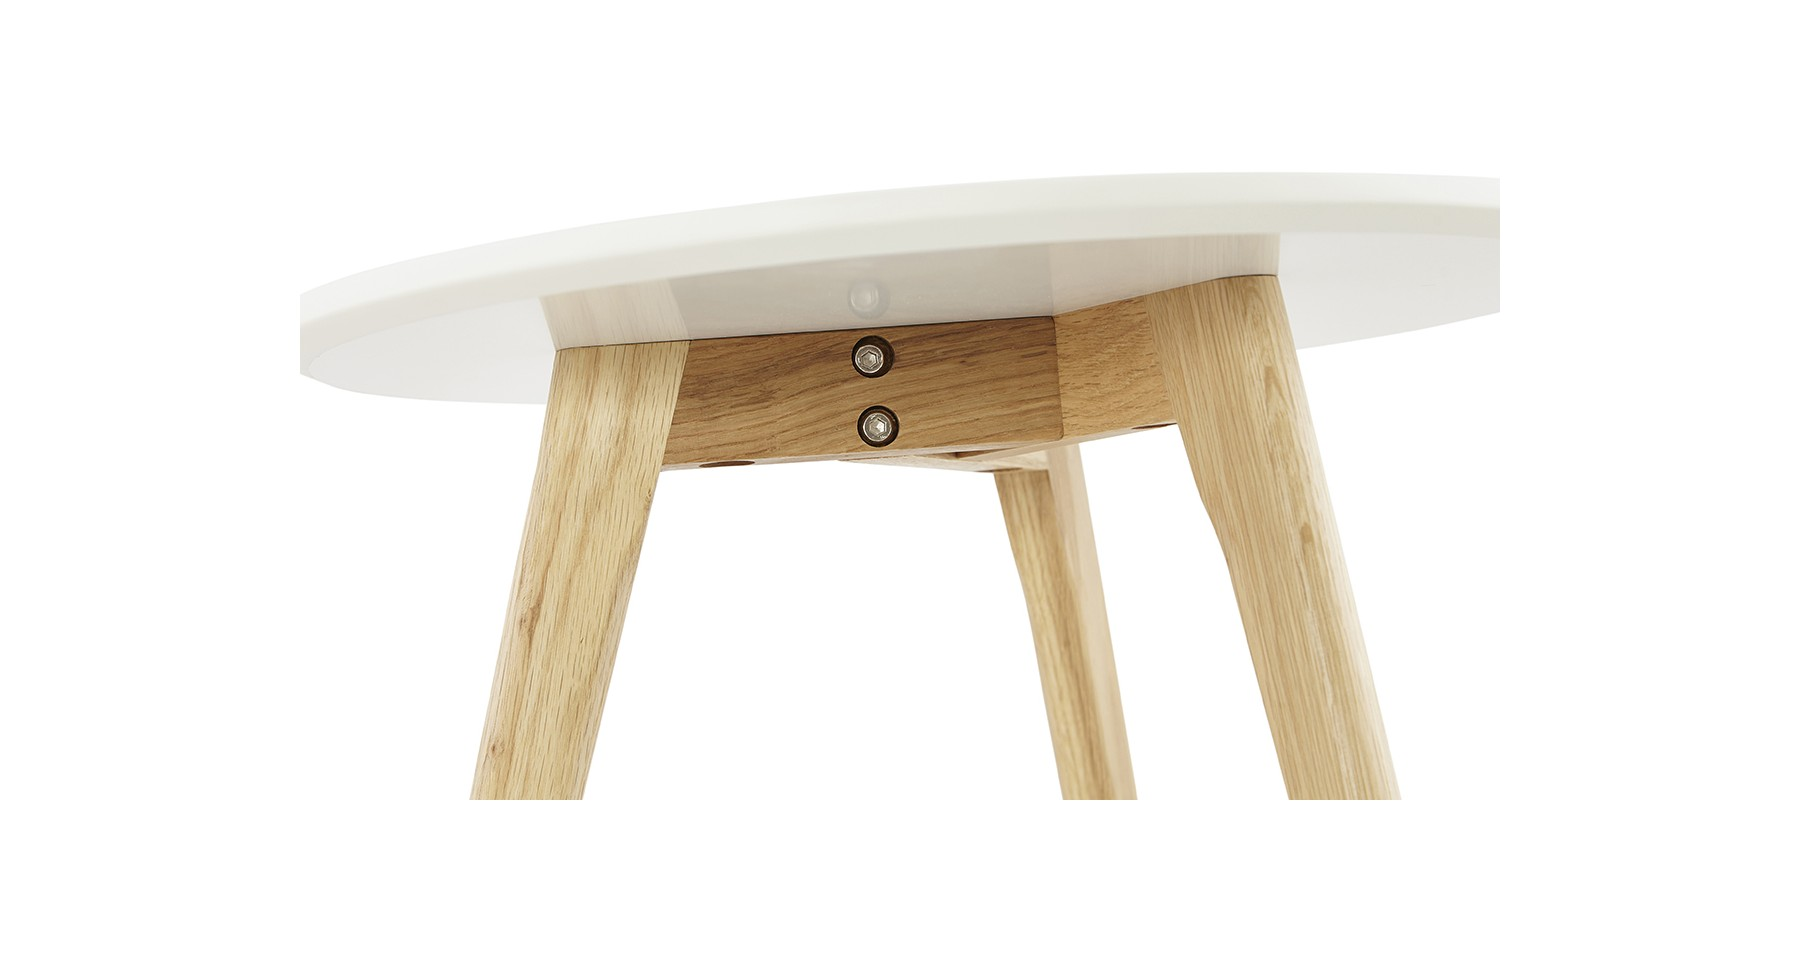 Destockage Canapé Angle Convertible Tables Basses Gigognes Scandinaves Blanches Et Pieds Bois Glodia